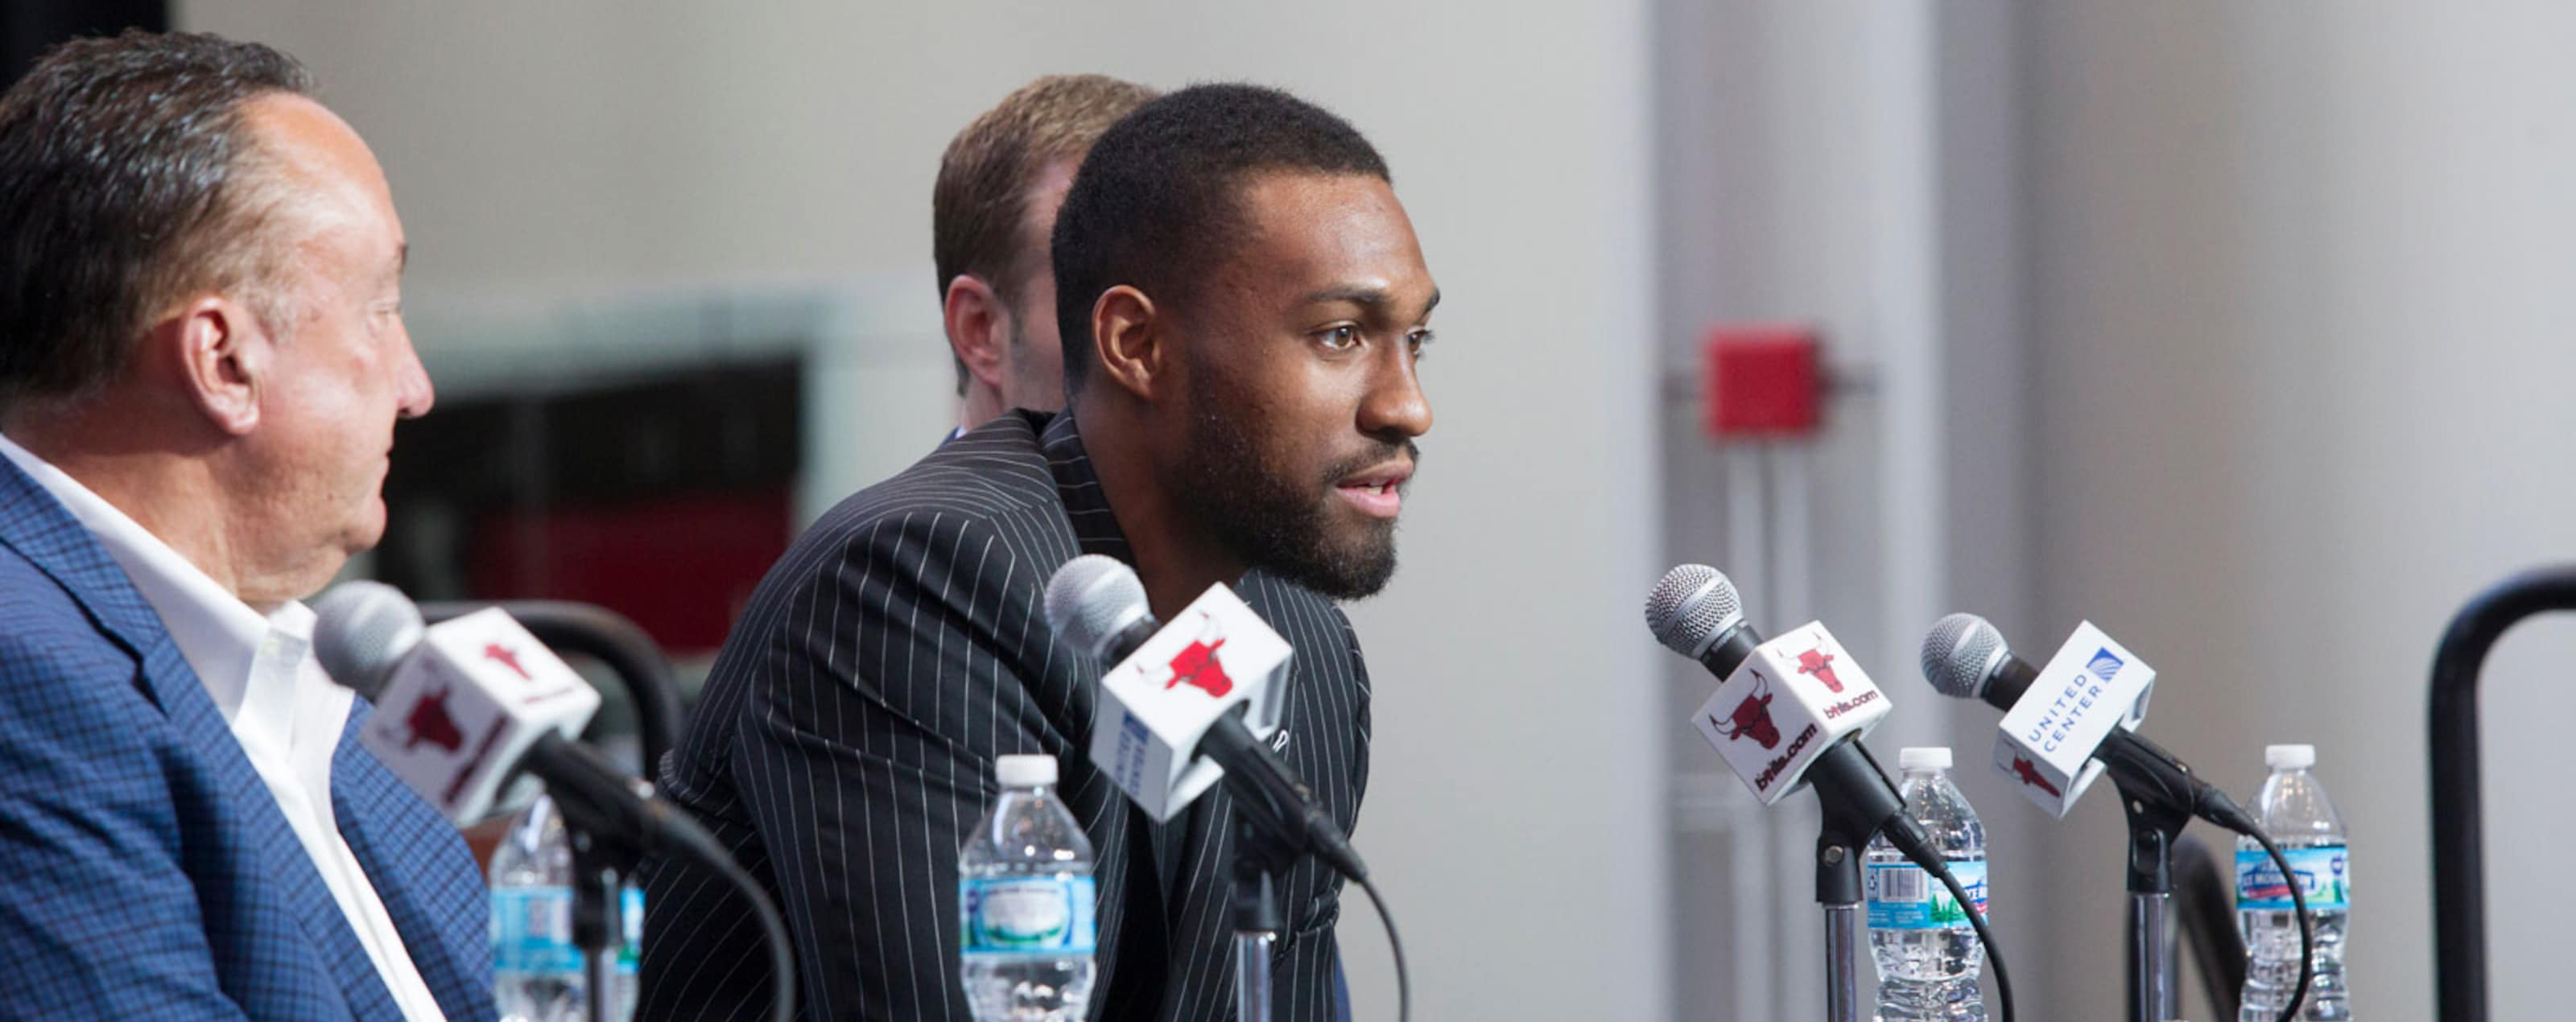 Jabari Parker speaks at a Press Conference at the United center with Gar Forman and Fred Hoiberg